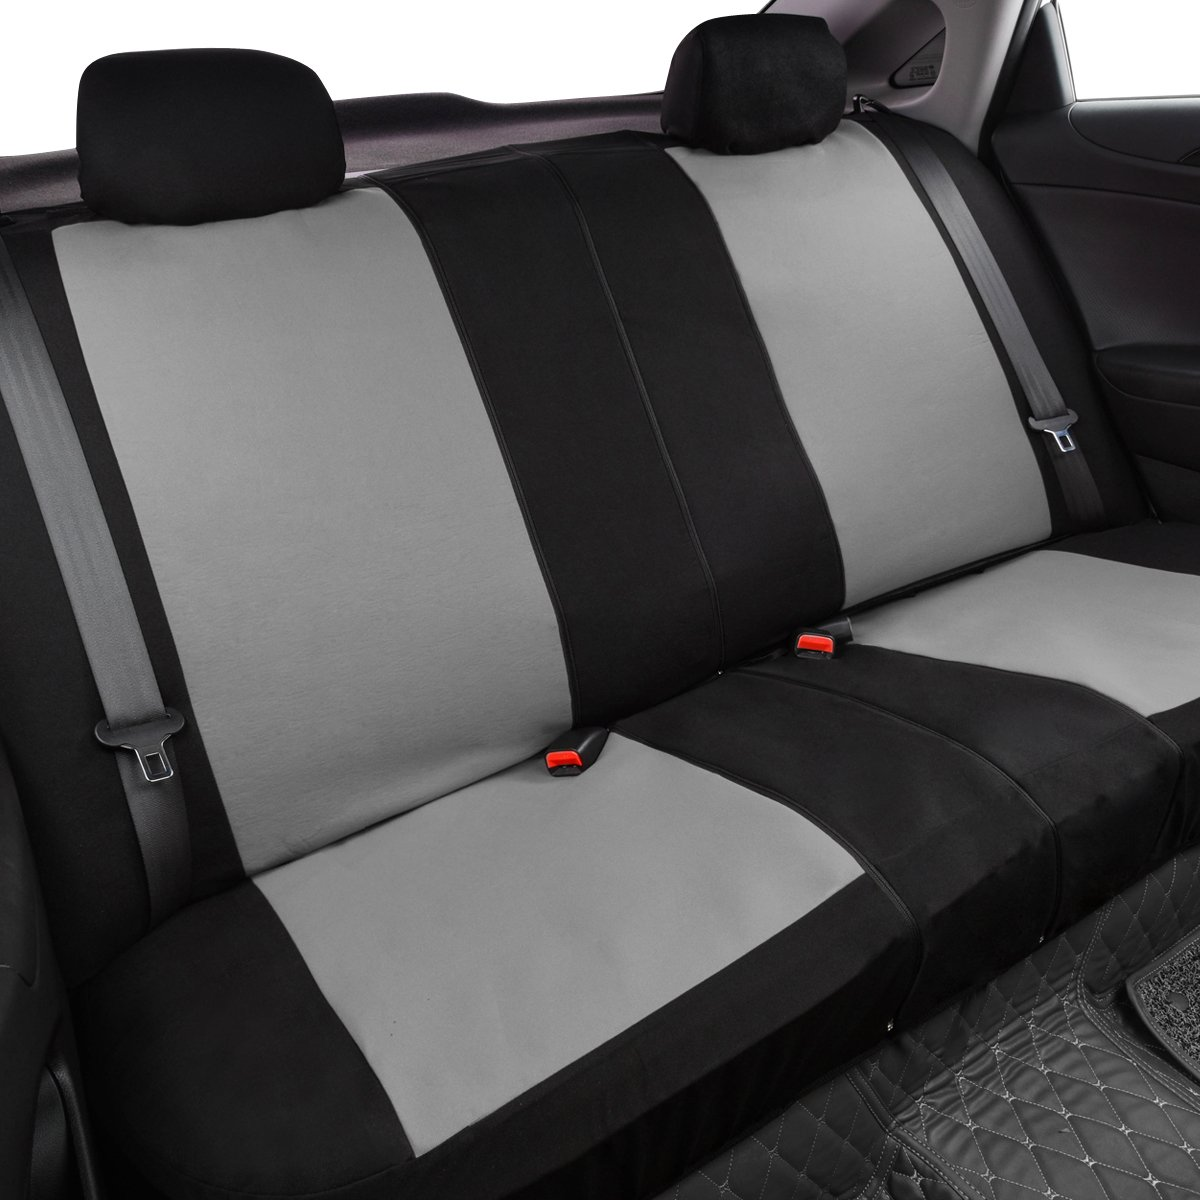 Black with Gray color NEW ARRIVAL CAR PASS Universal fit car Seat Covers with opening holes for headrest and seatbelt,fit for SUV,Car,vehicles,Trunk